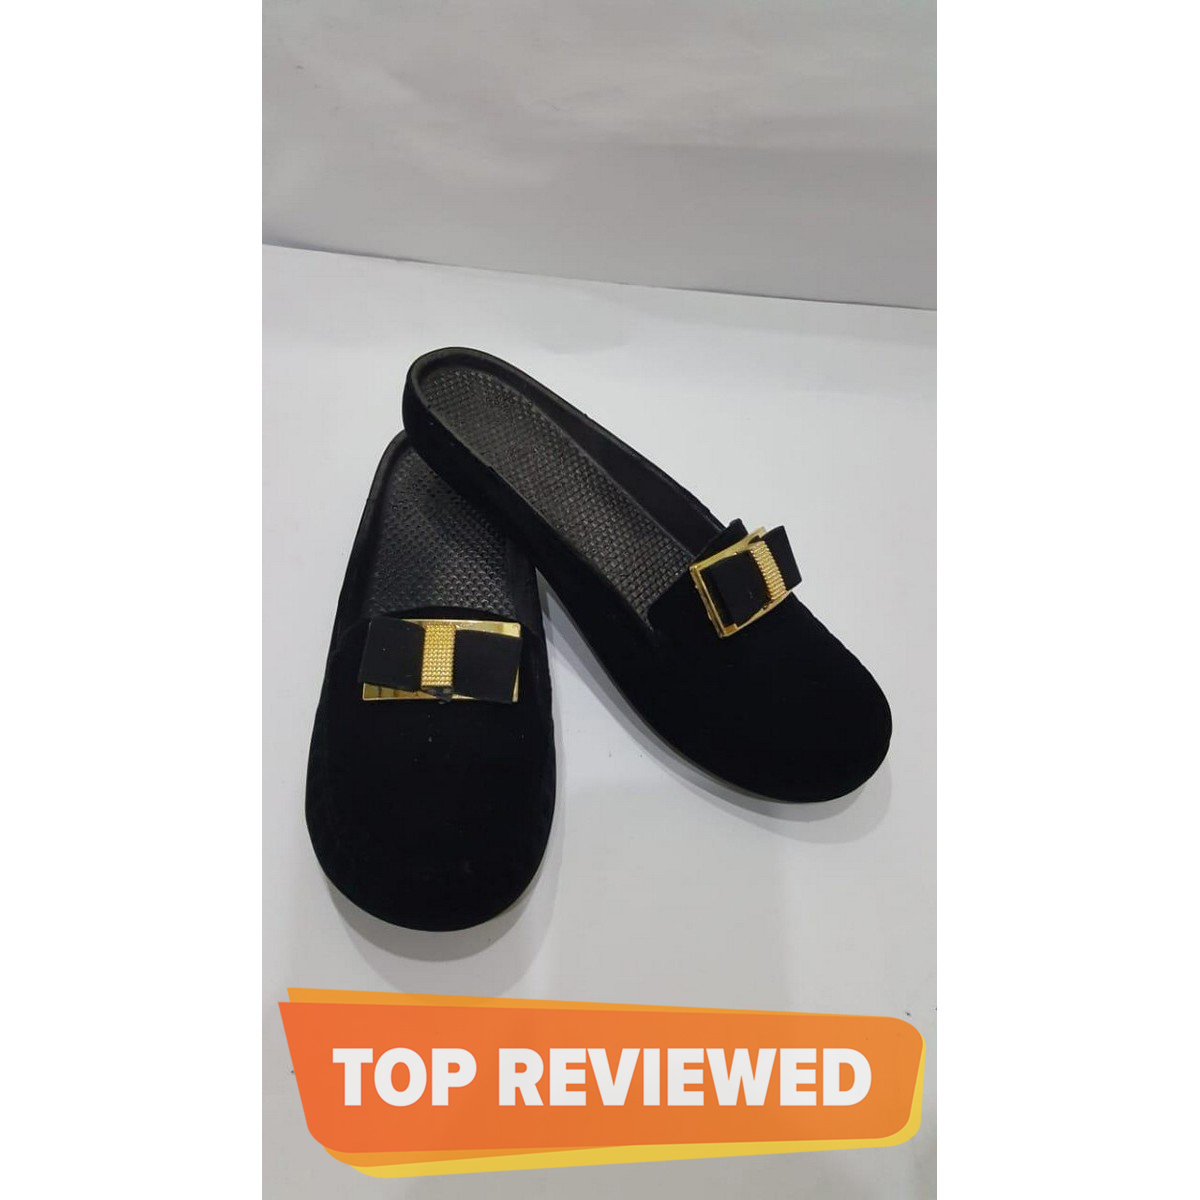 KFC Casual Black Slipper For WoMen Latest Arrival With Fabolus Quality